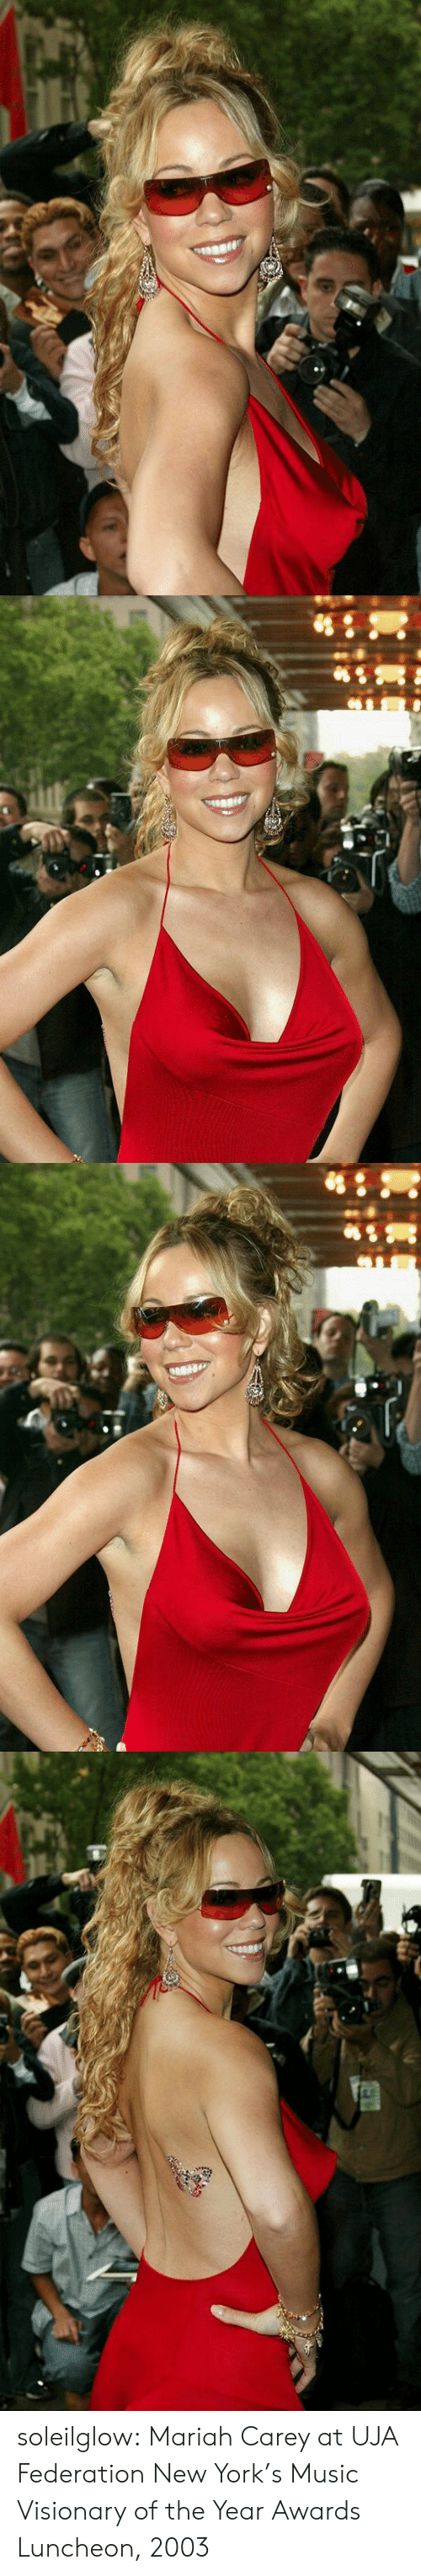 Carey: soleilglow: Mariah Carey at UJA Federation New York's Music Visionary of the Year Awards Luncheon, 2003